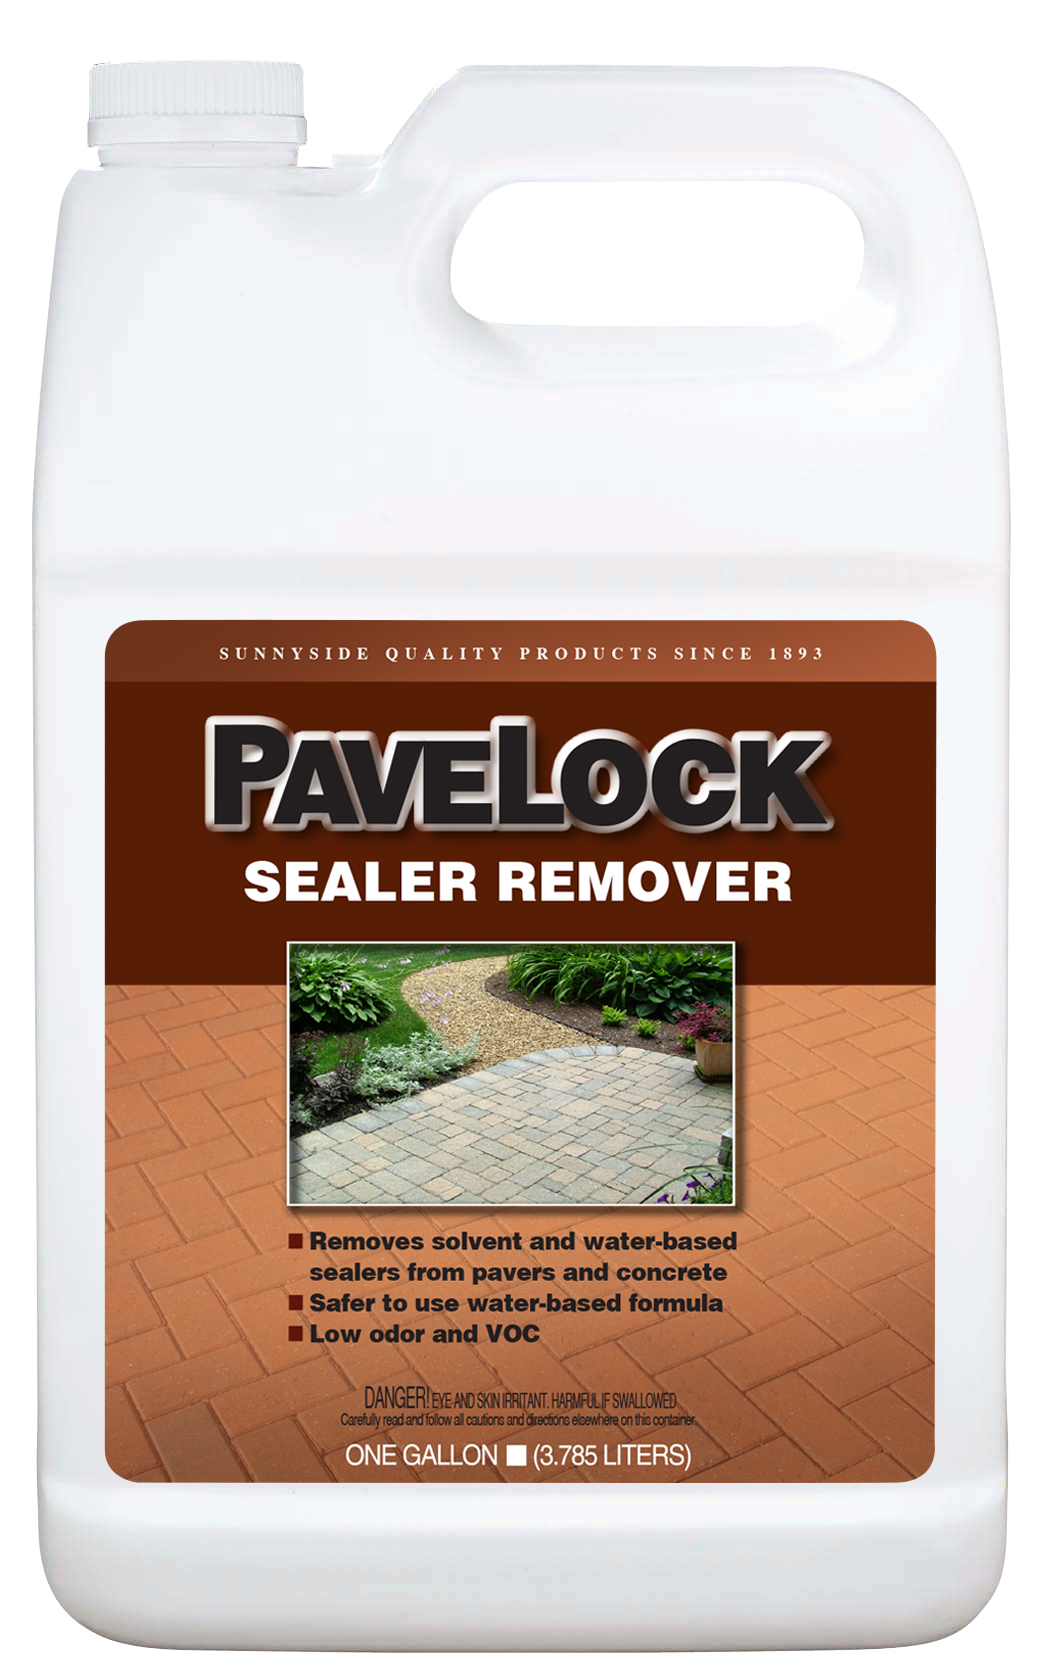 PAVELOCK SEALER REMOVER Product Image